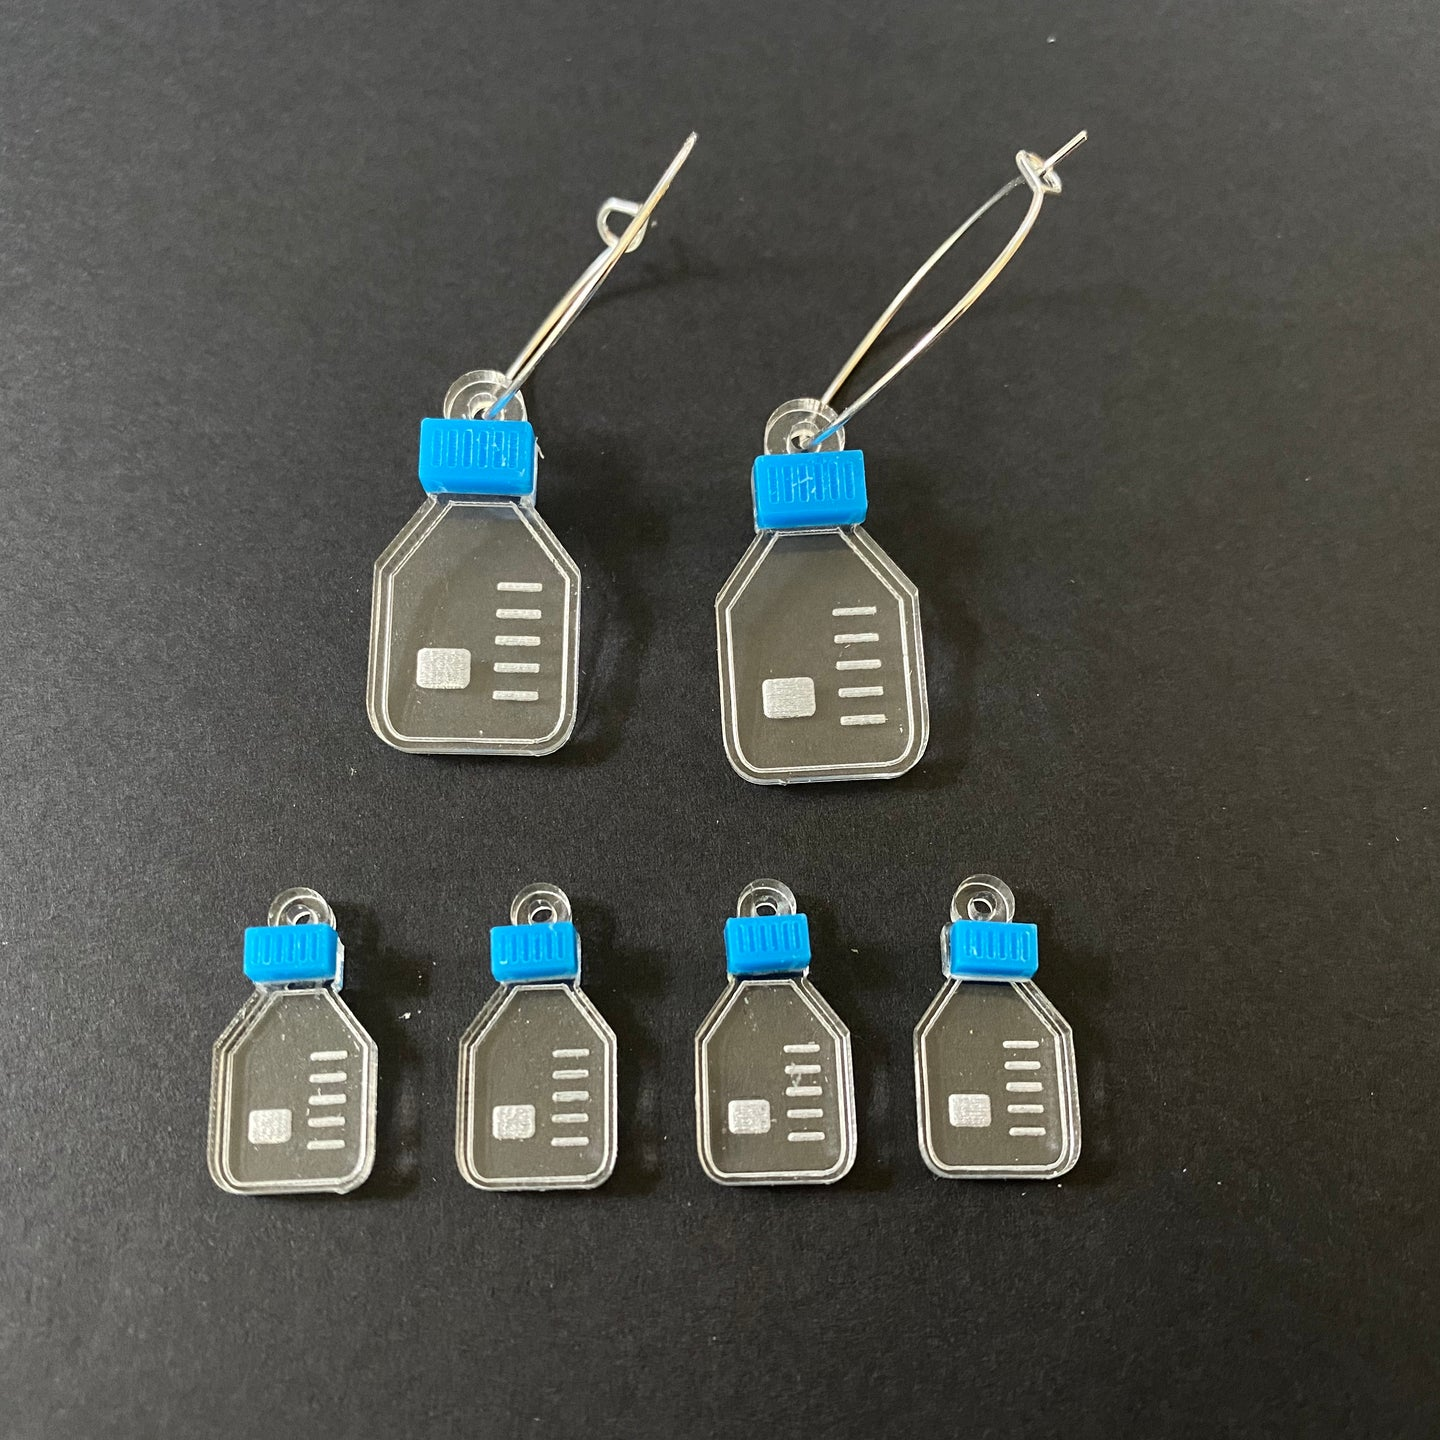 Duran style flask stitch markers or earrings